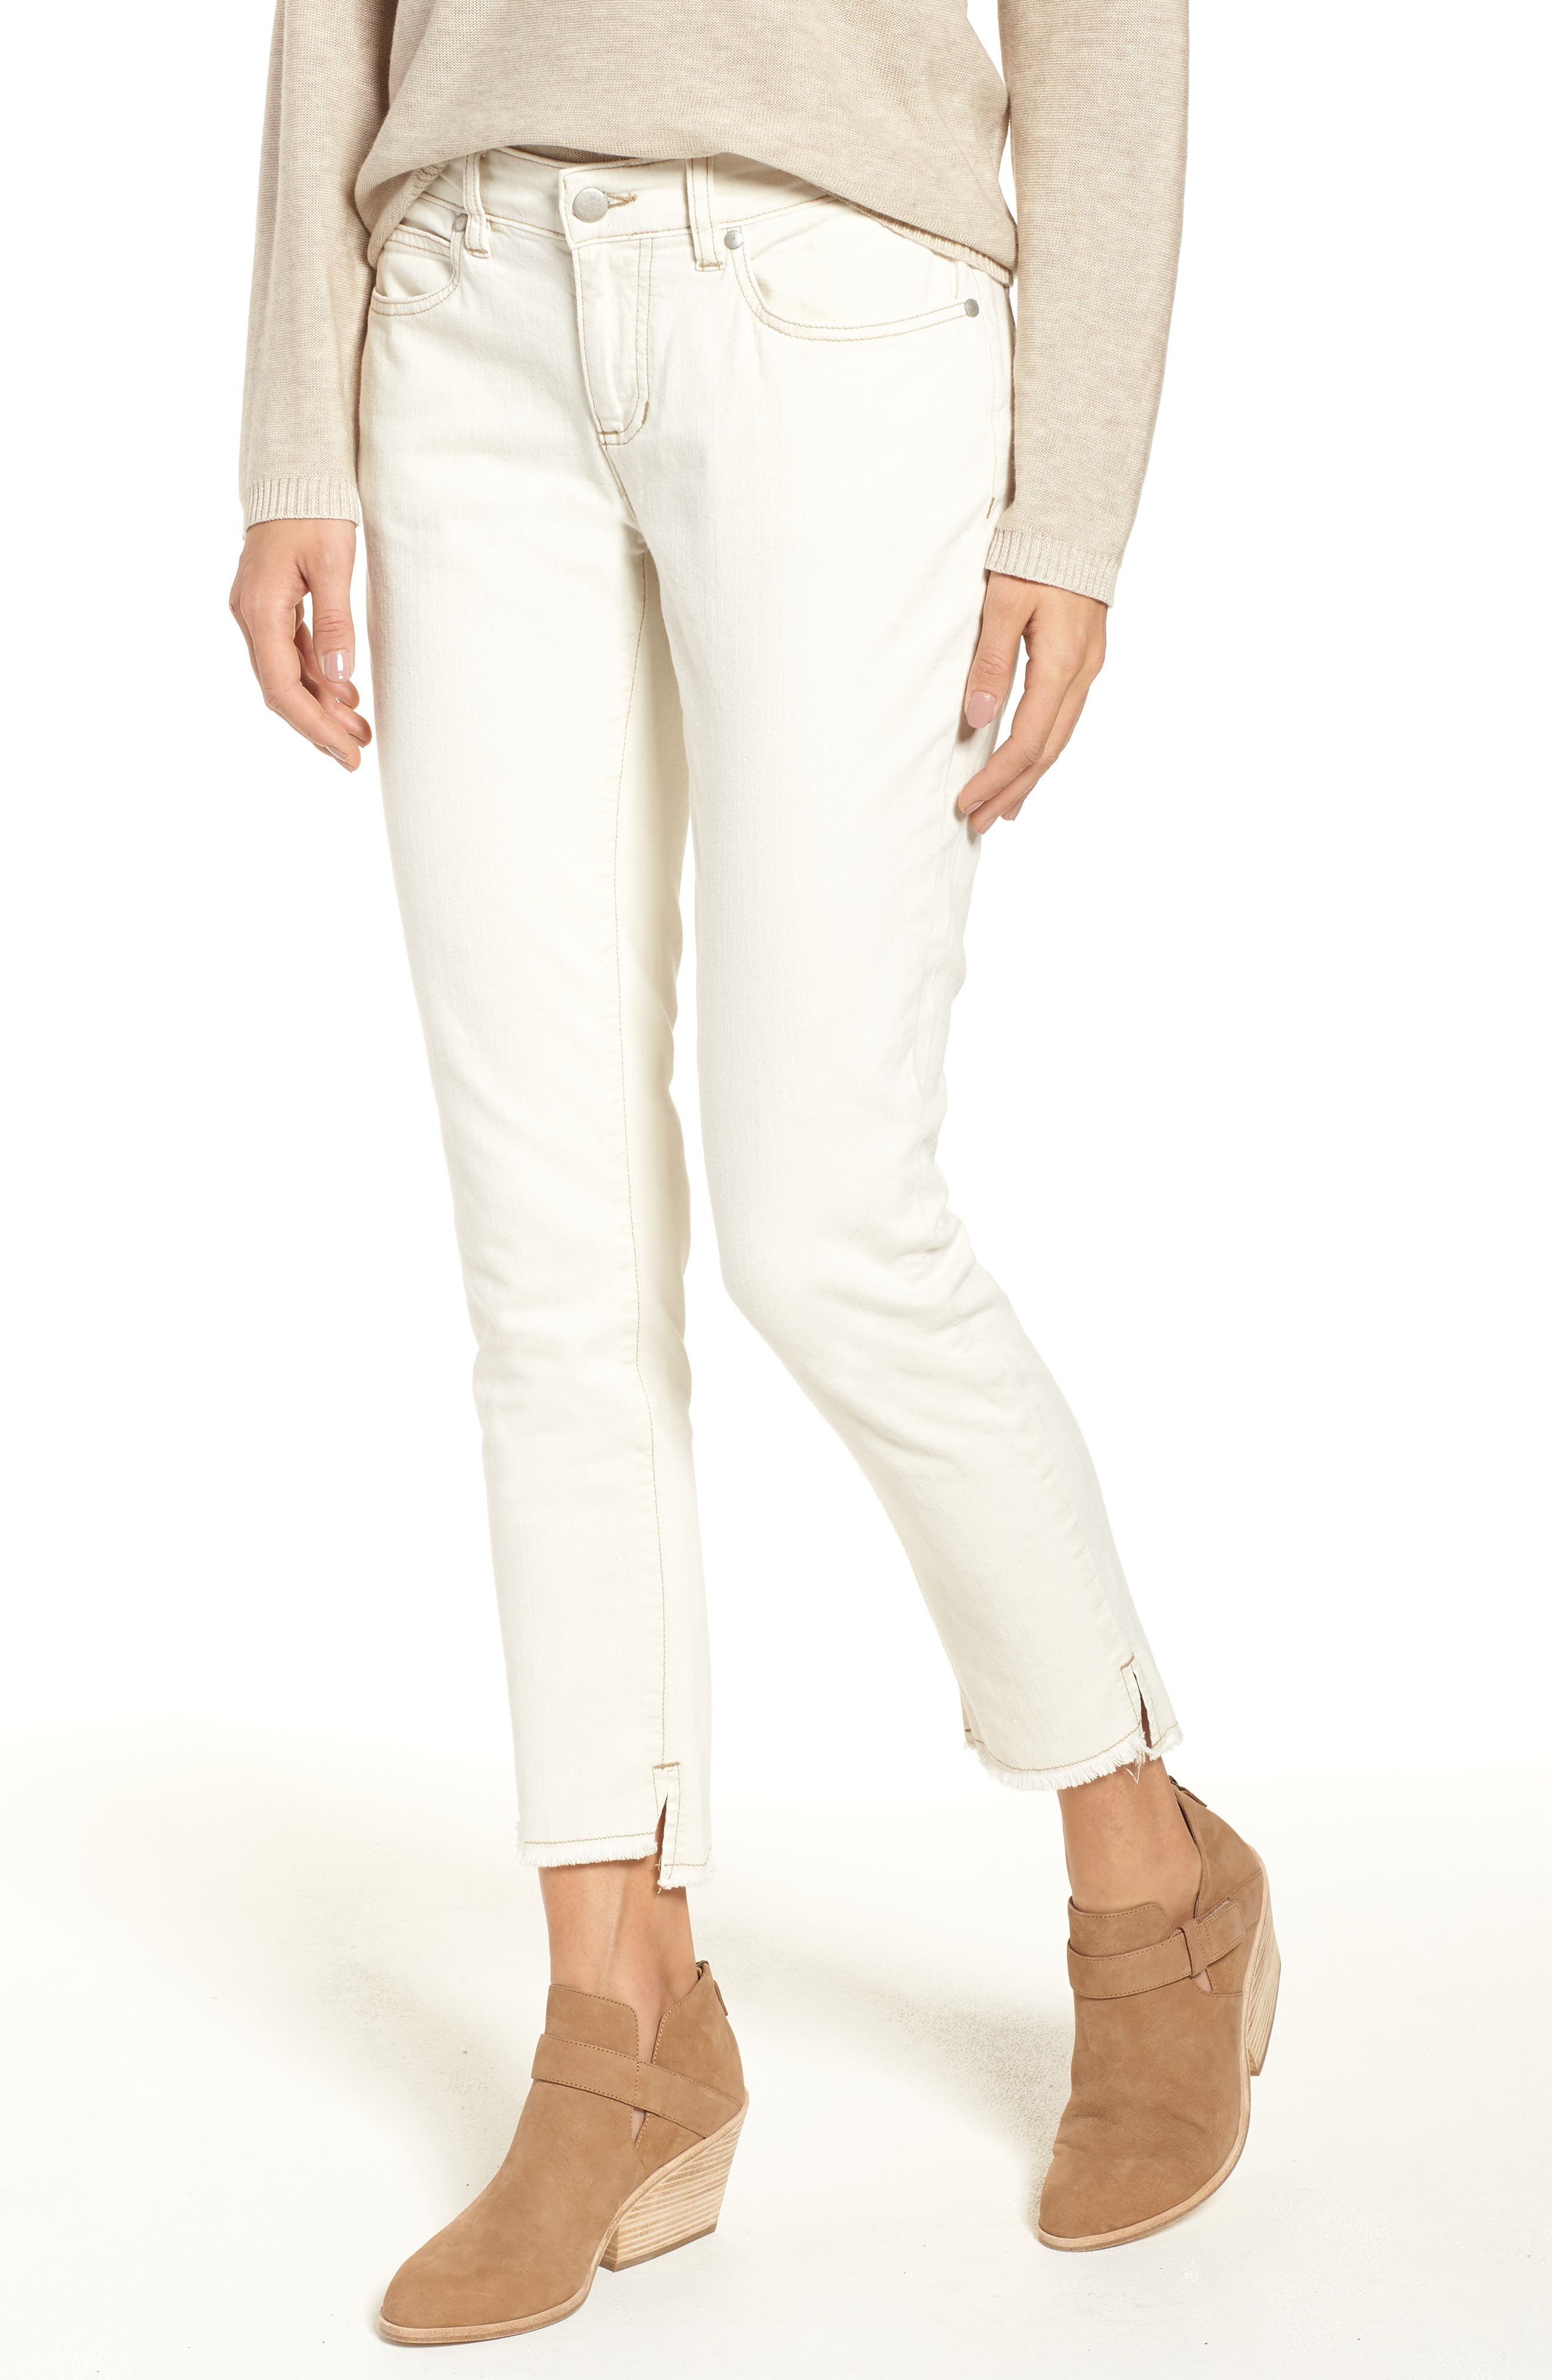 Stretch Organic Cotton Slim Ankle Jeans,                             Main thumbnail 1, color,                             Undyed Natural